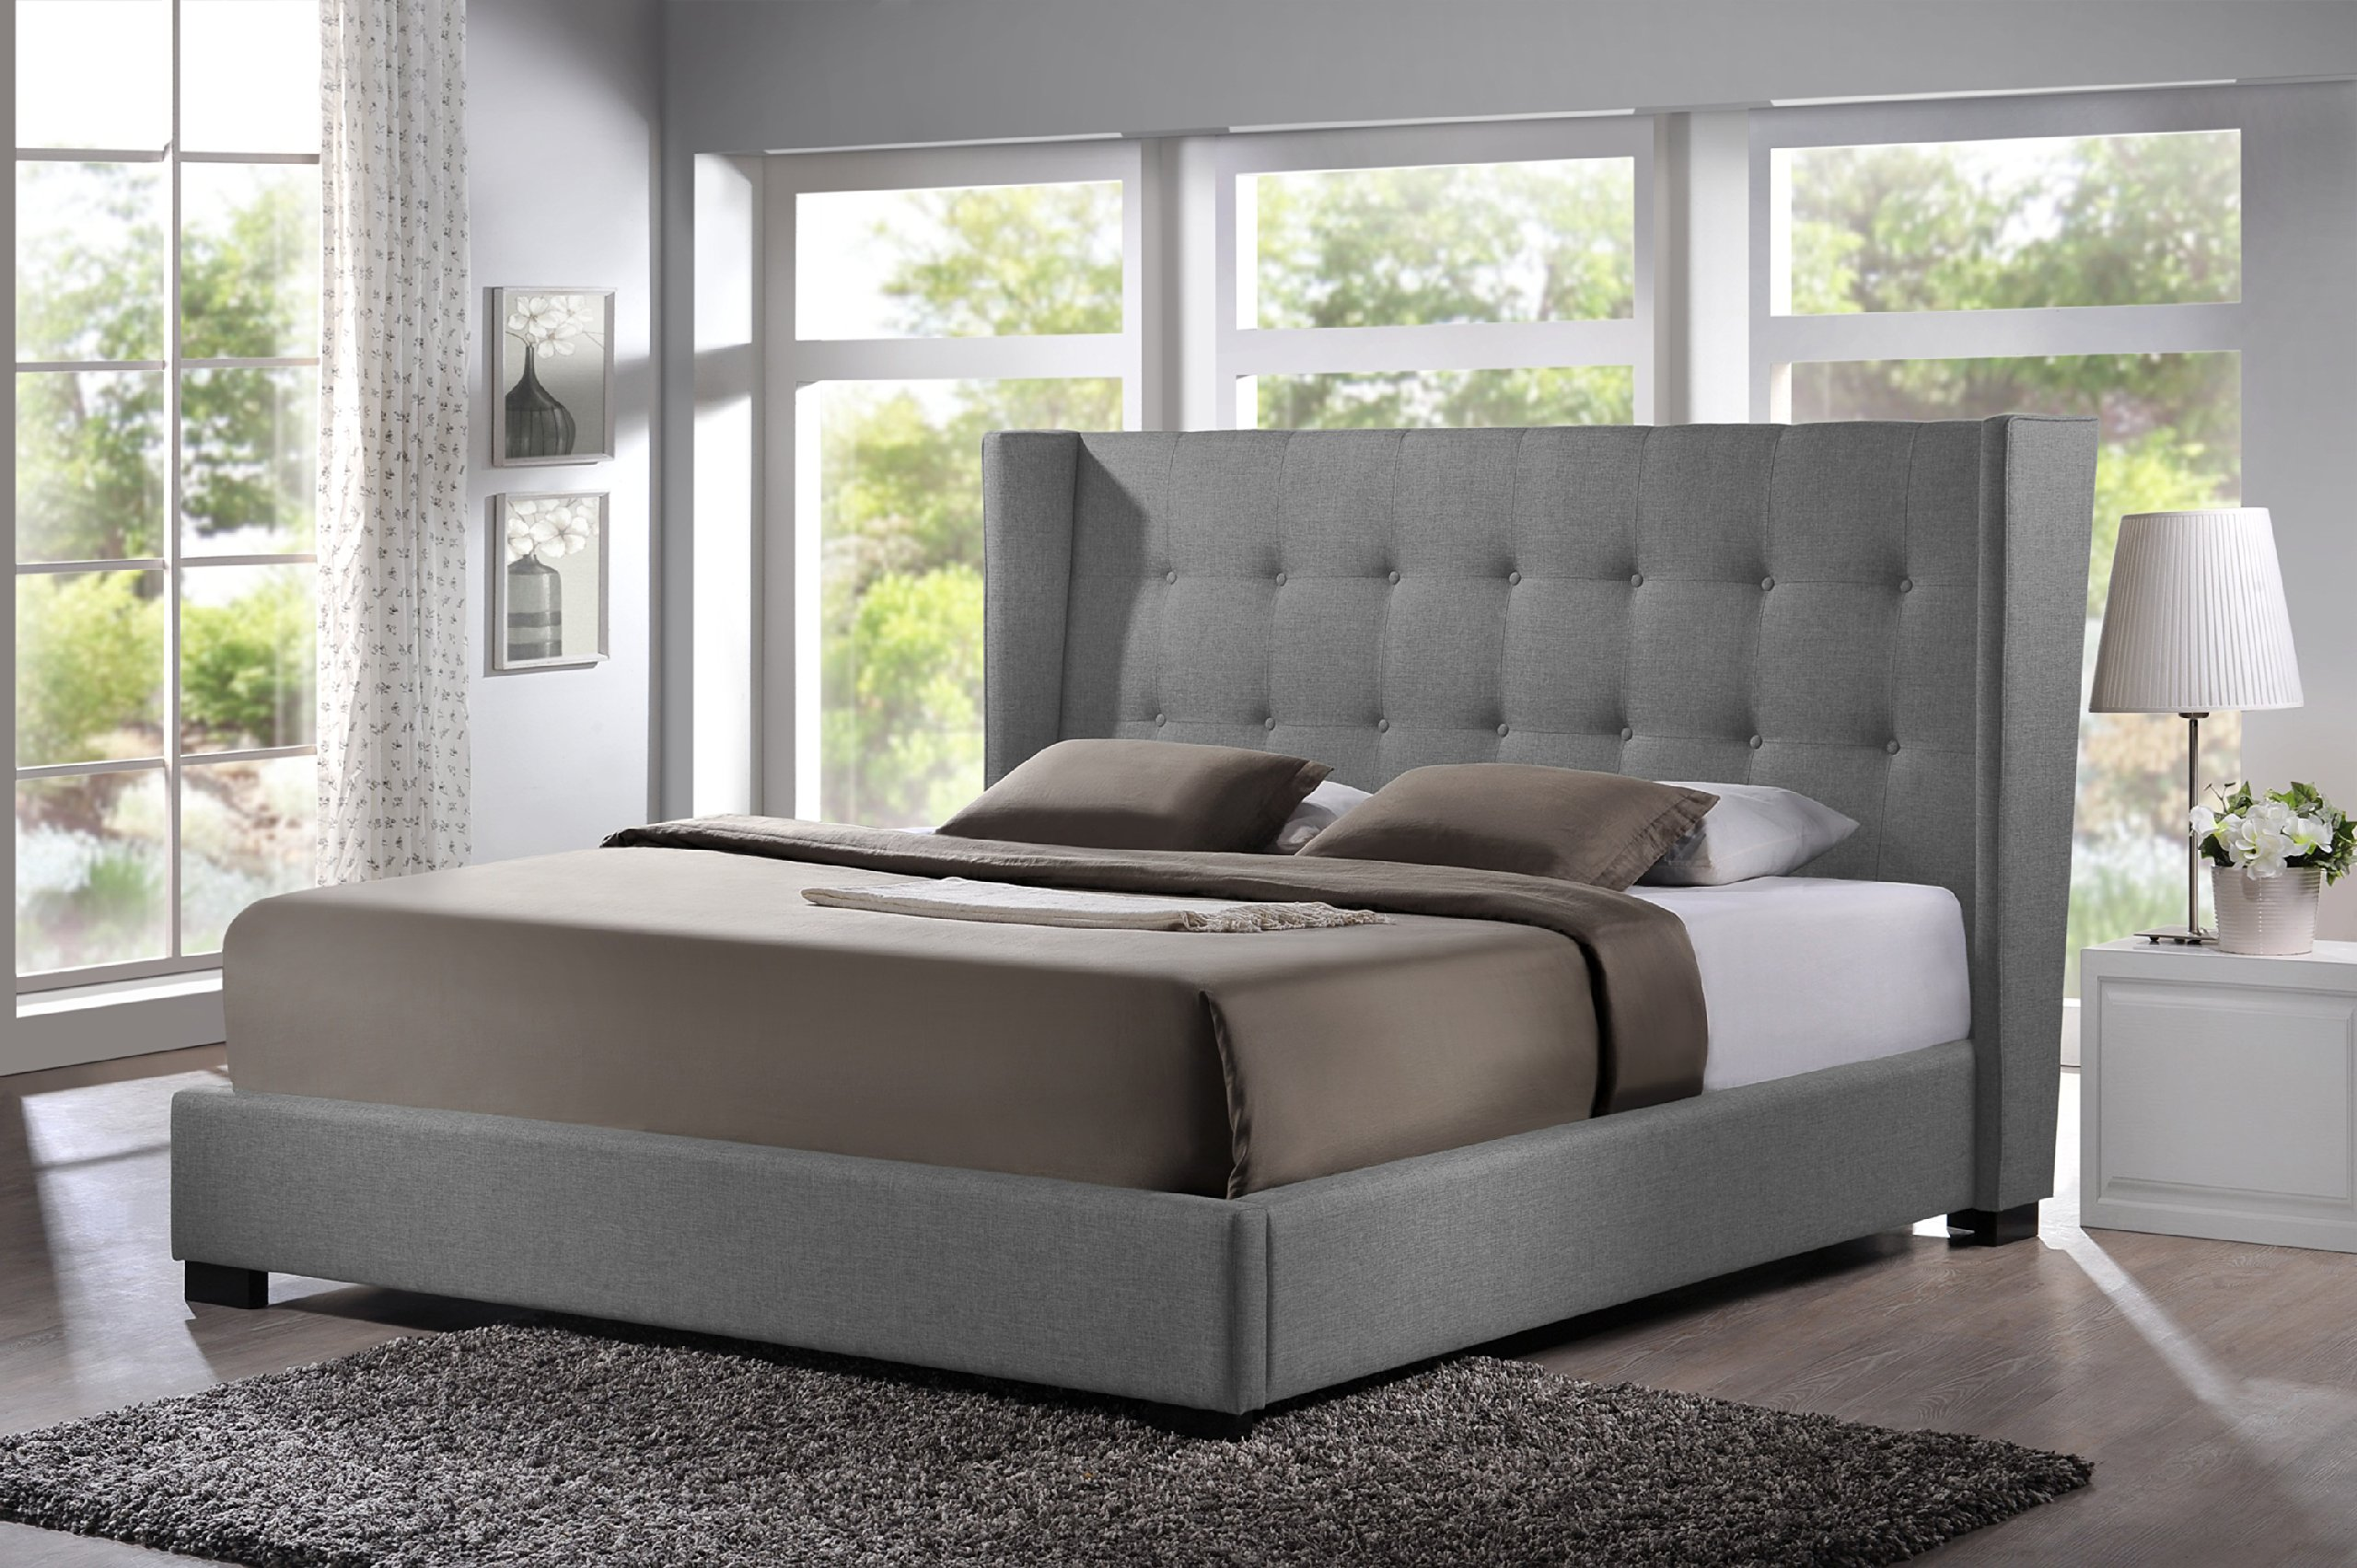 Baxton Studio Favela Linen Modern Bed with Upholstered Headboard, King, Grey by Baxton Studio